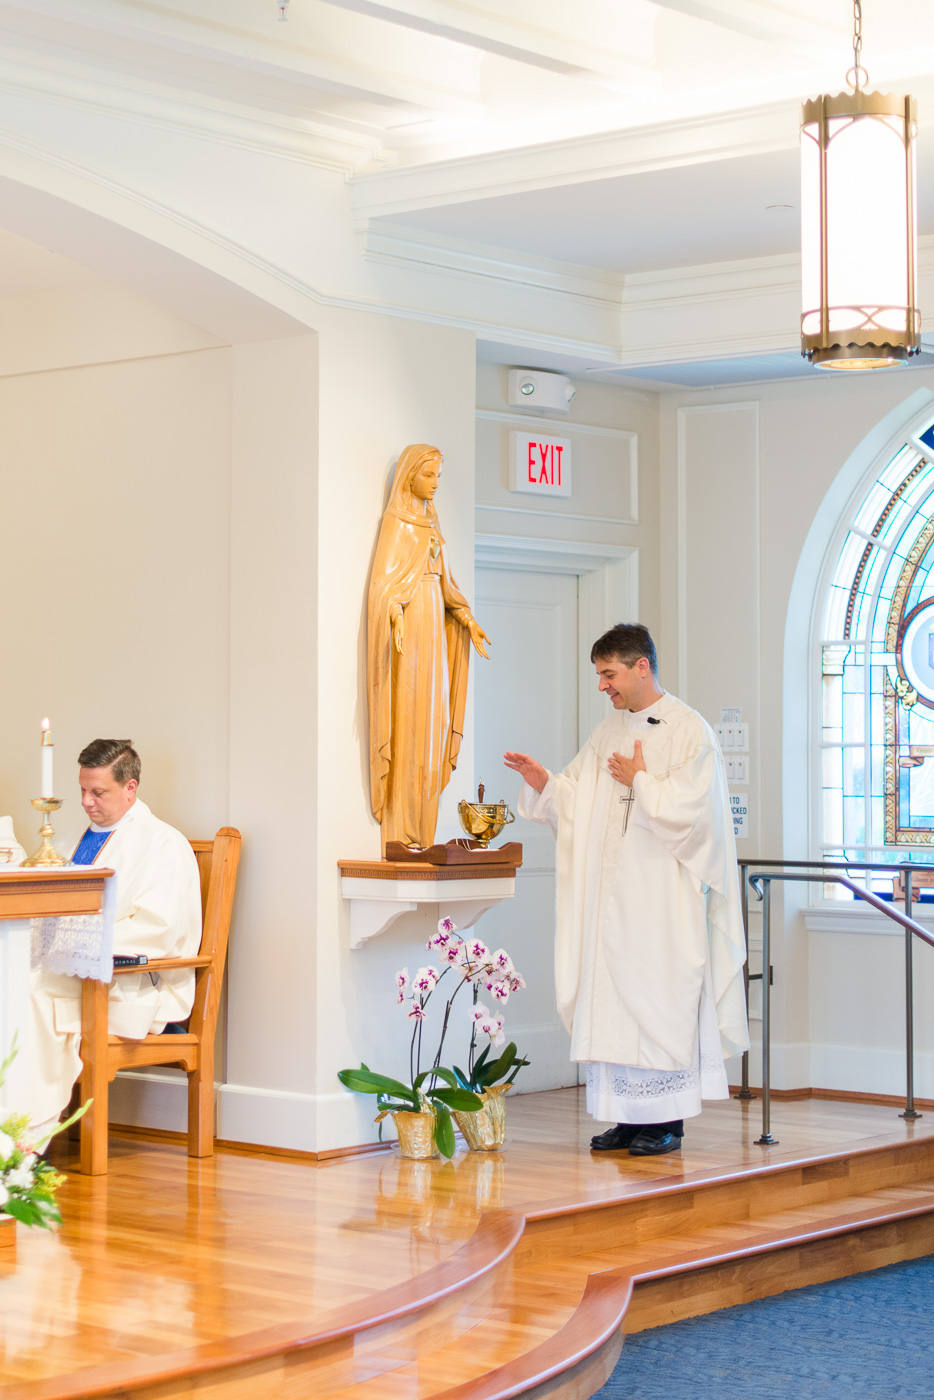 Emily-Annette-Photography-Catholic-Consecrated-Commitment-Mass-Event-Diocese-Arlington-Fairfax-Photographer-Youth-Apostles-August-2018-03.jpg